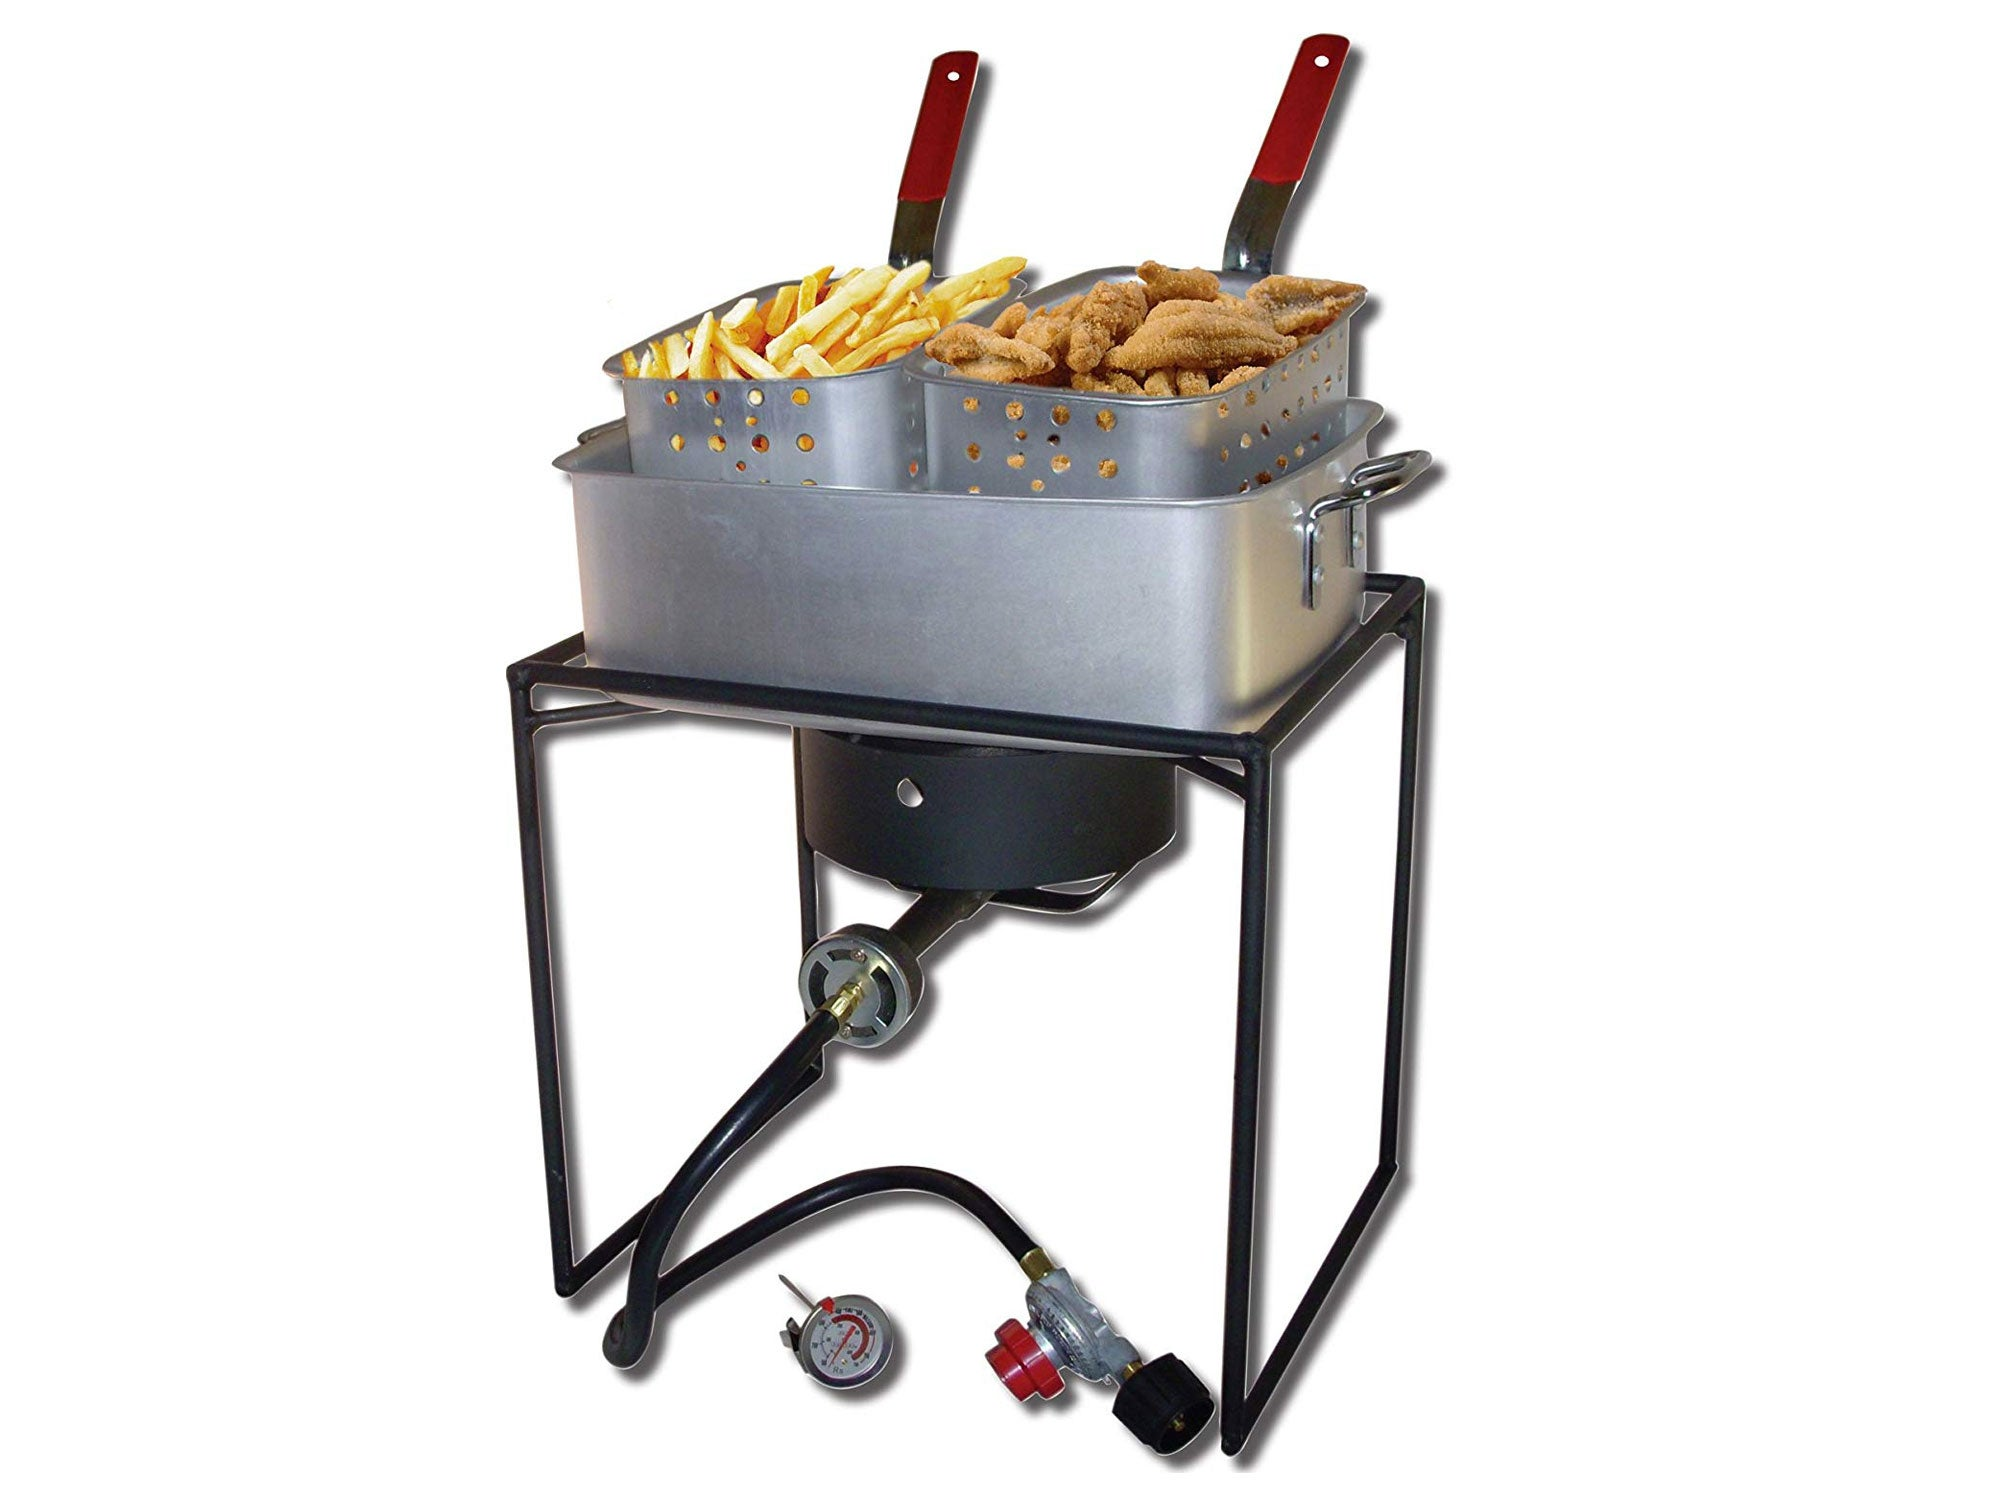 King Kooker 16-Inch Propane Outdoor Cooker with Aluminum Pan and 2 Frying Baskets